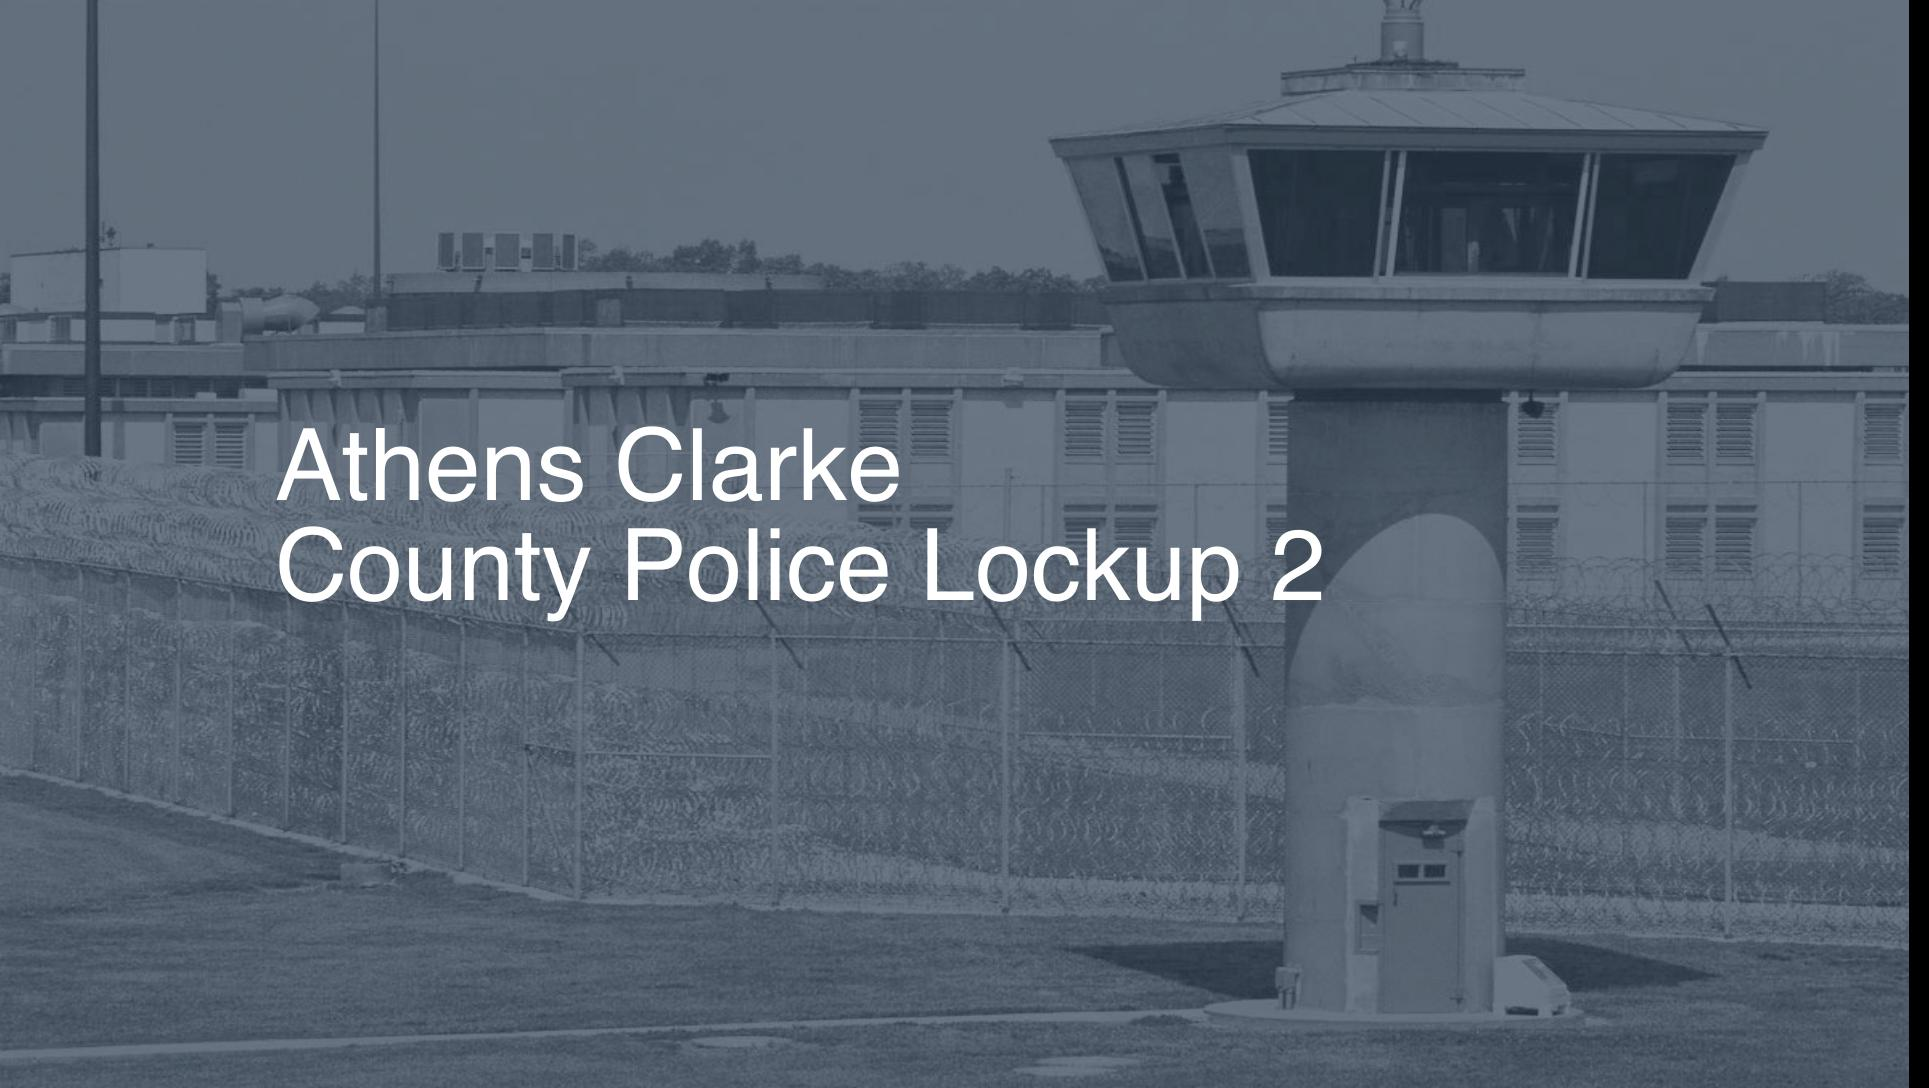 Athens-Clarke County Police Lockup Inmate Search, Lookup & Services